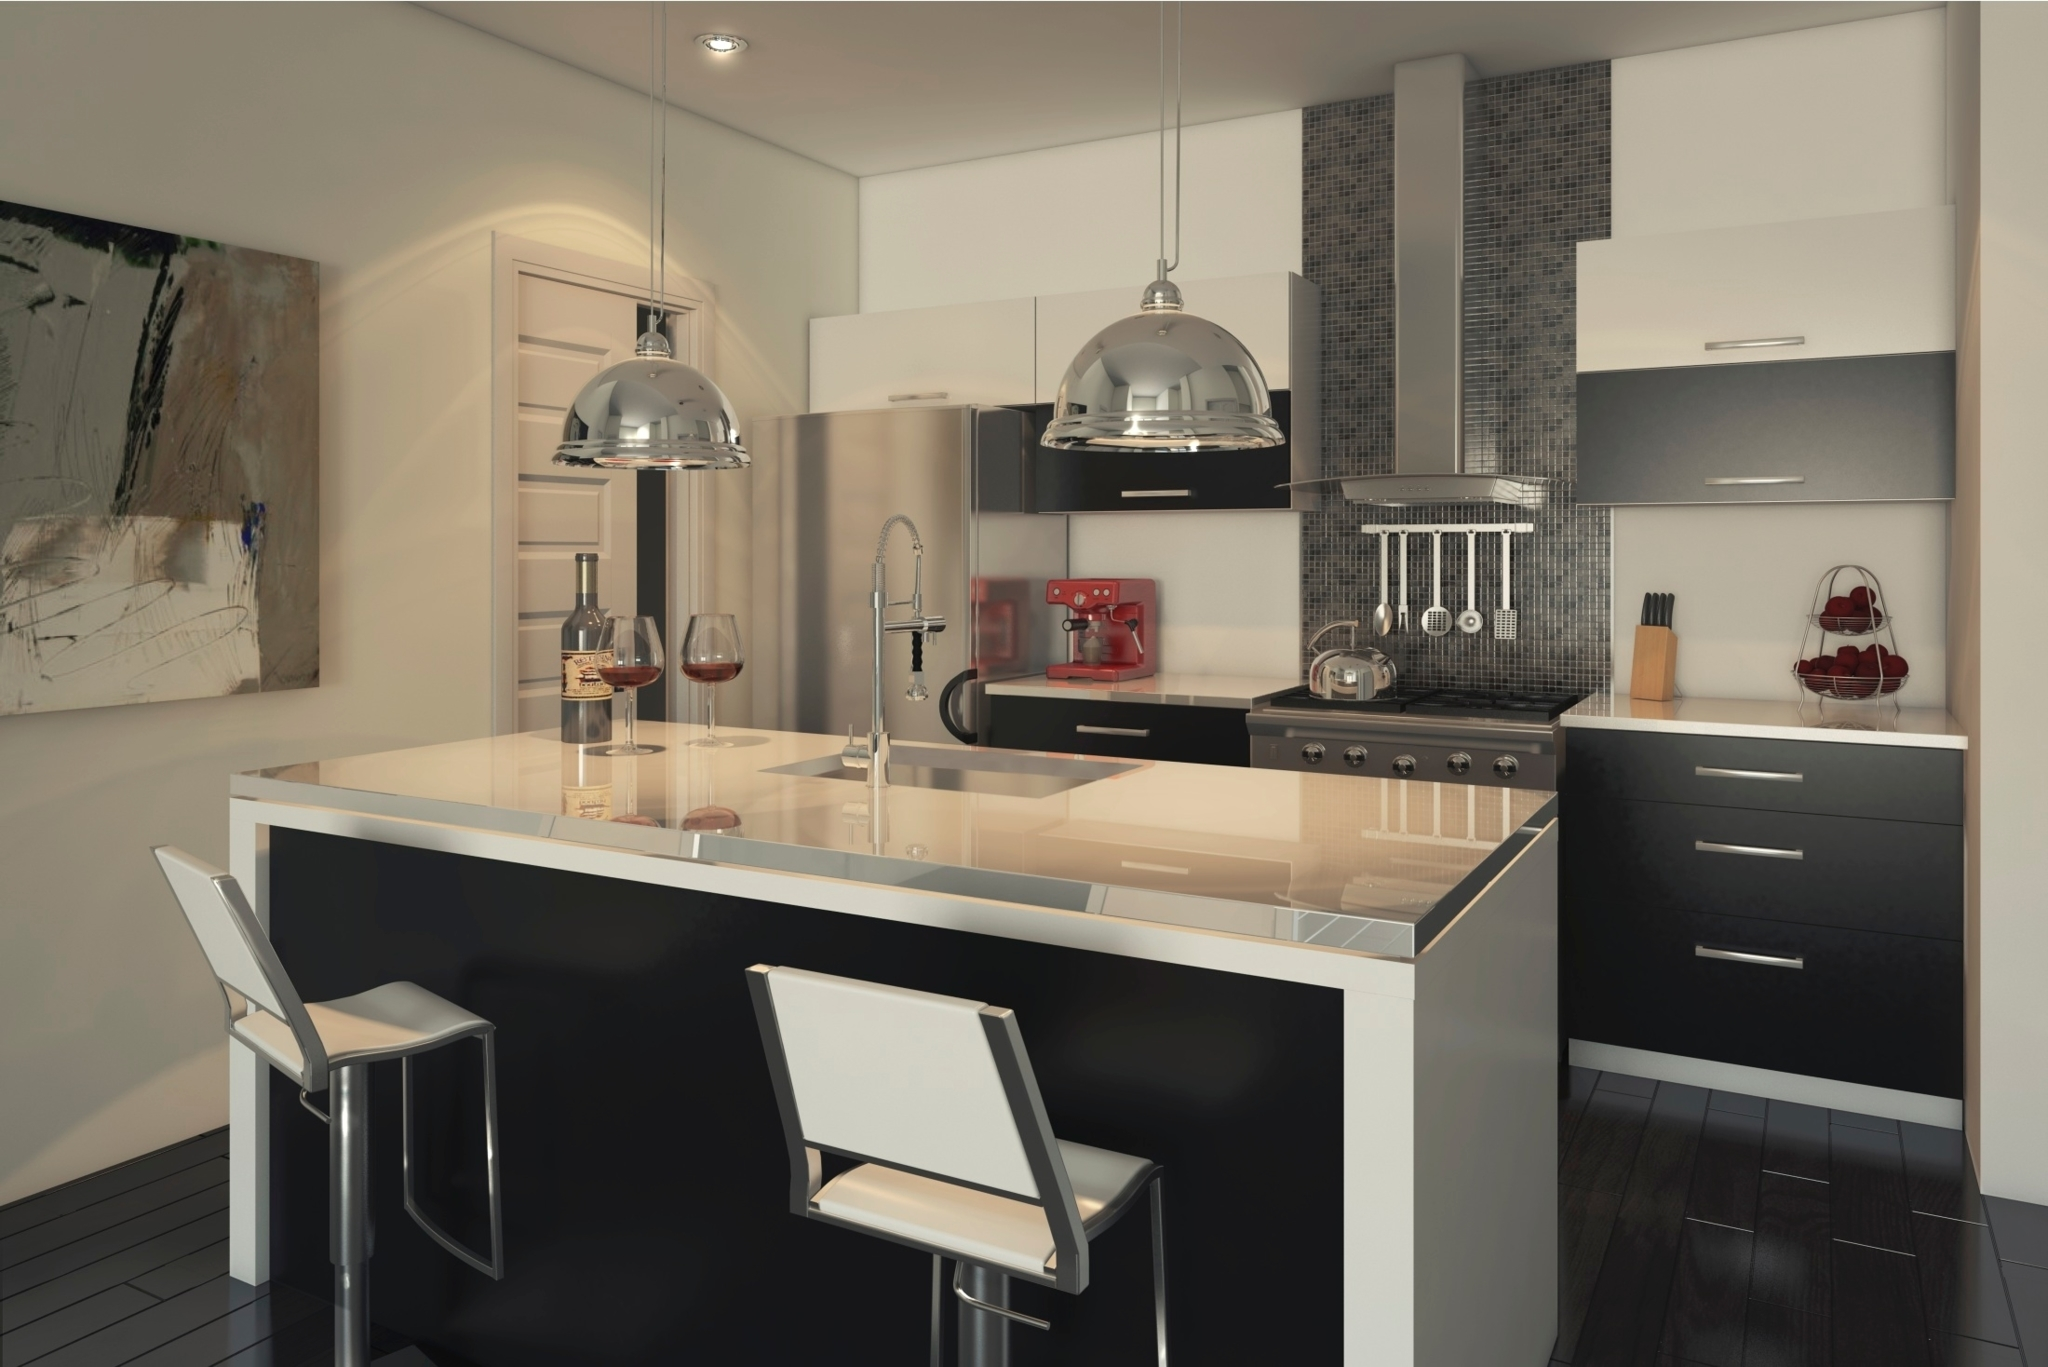 Centre de cuisine design montr al qc ourbis for Decoration cuisine quebec